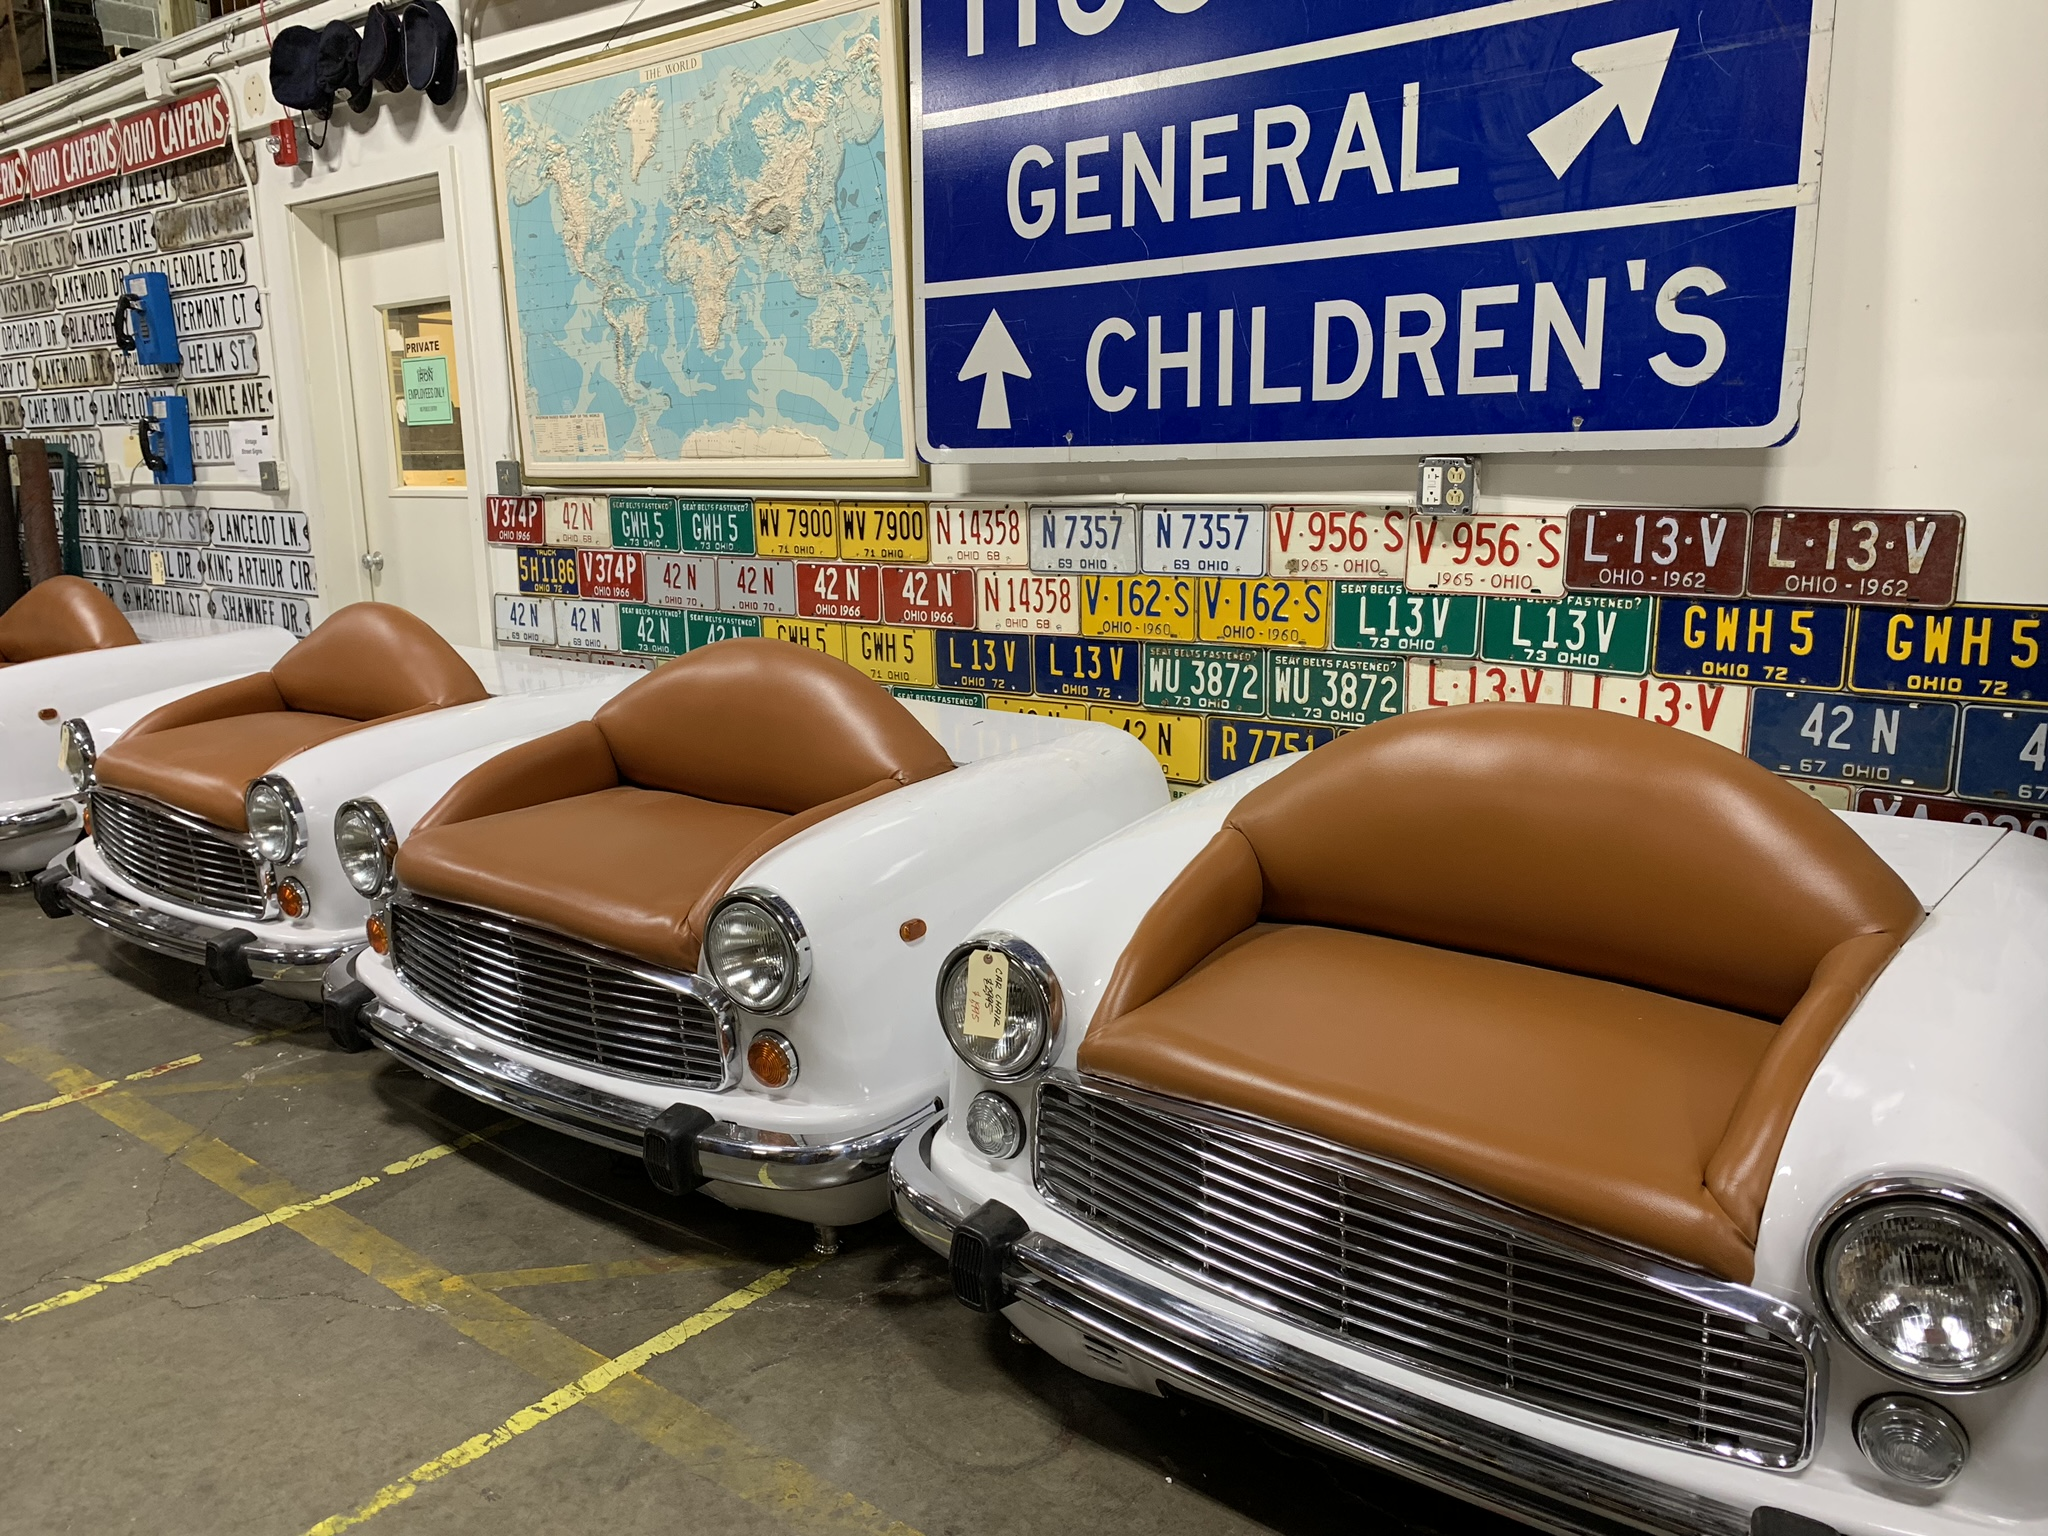 Chair cars, Original Price $2,995 ON SALE FOR $1,995!